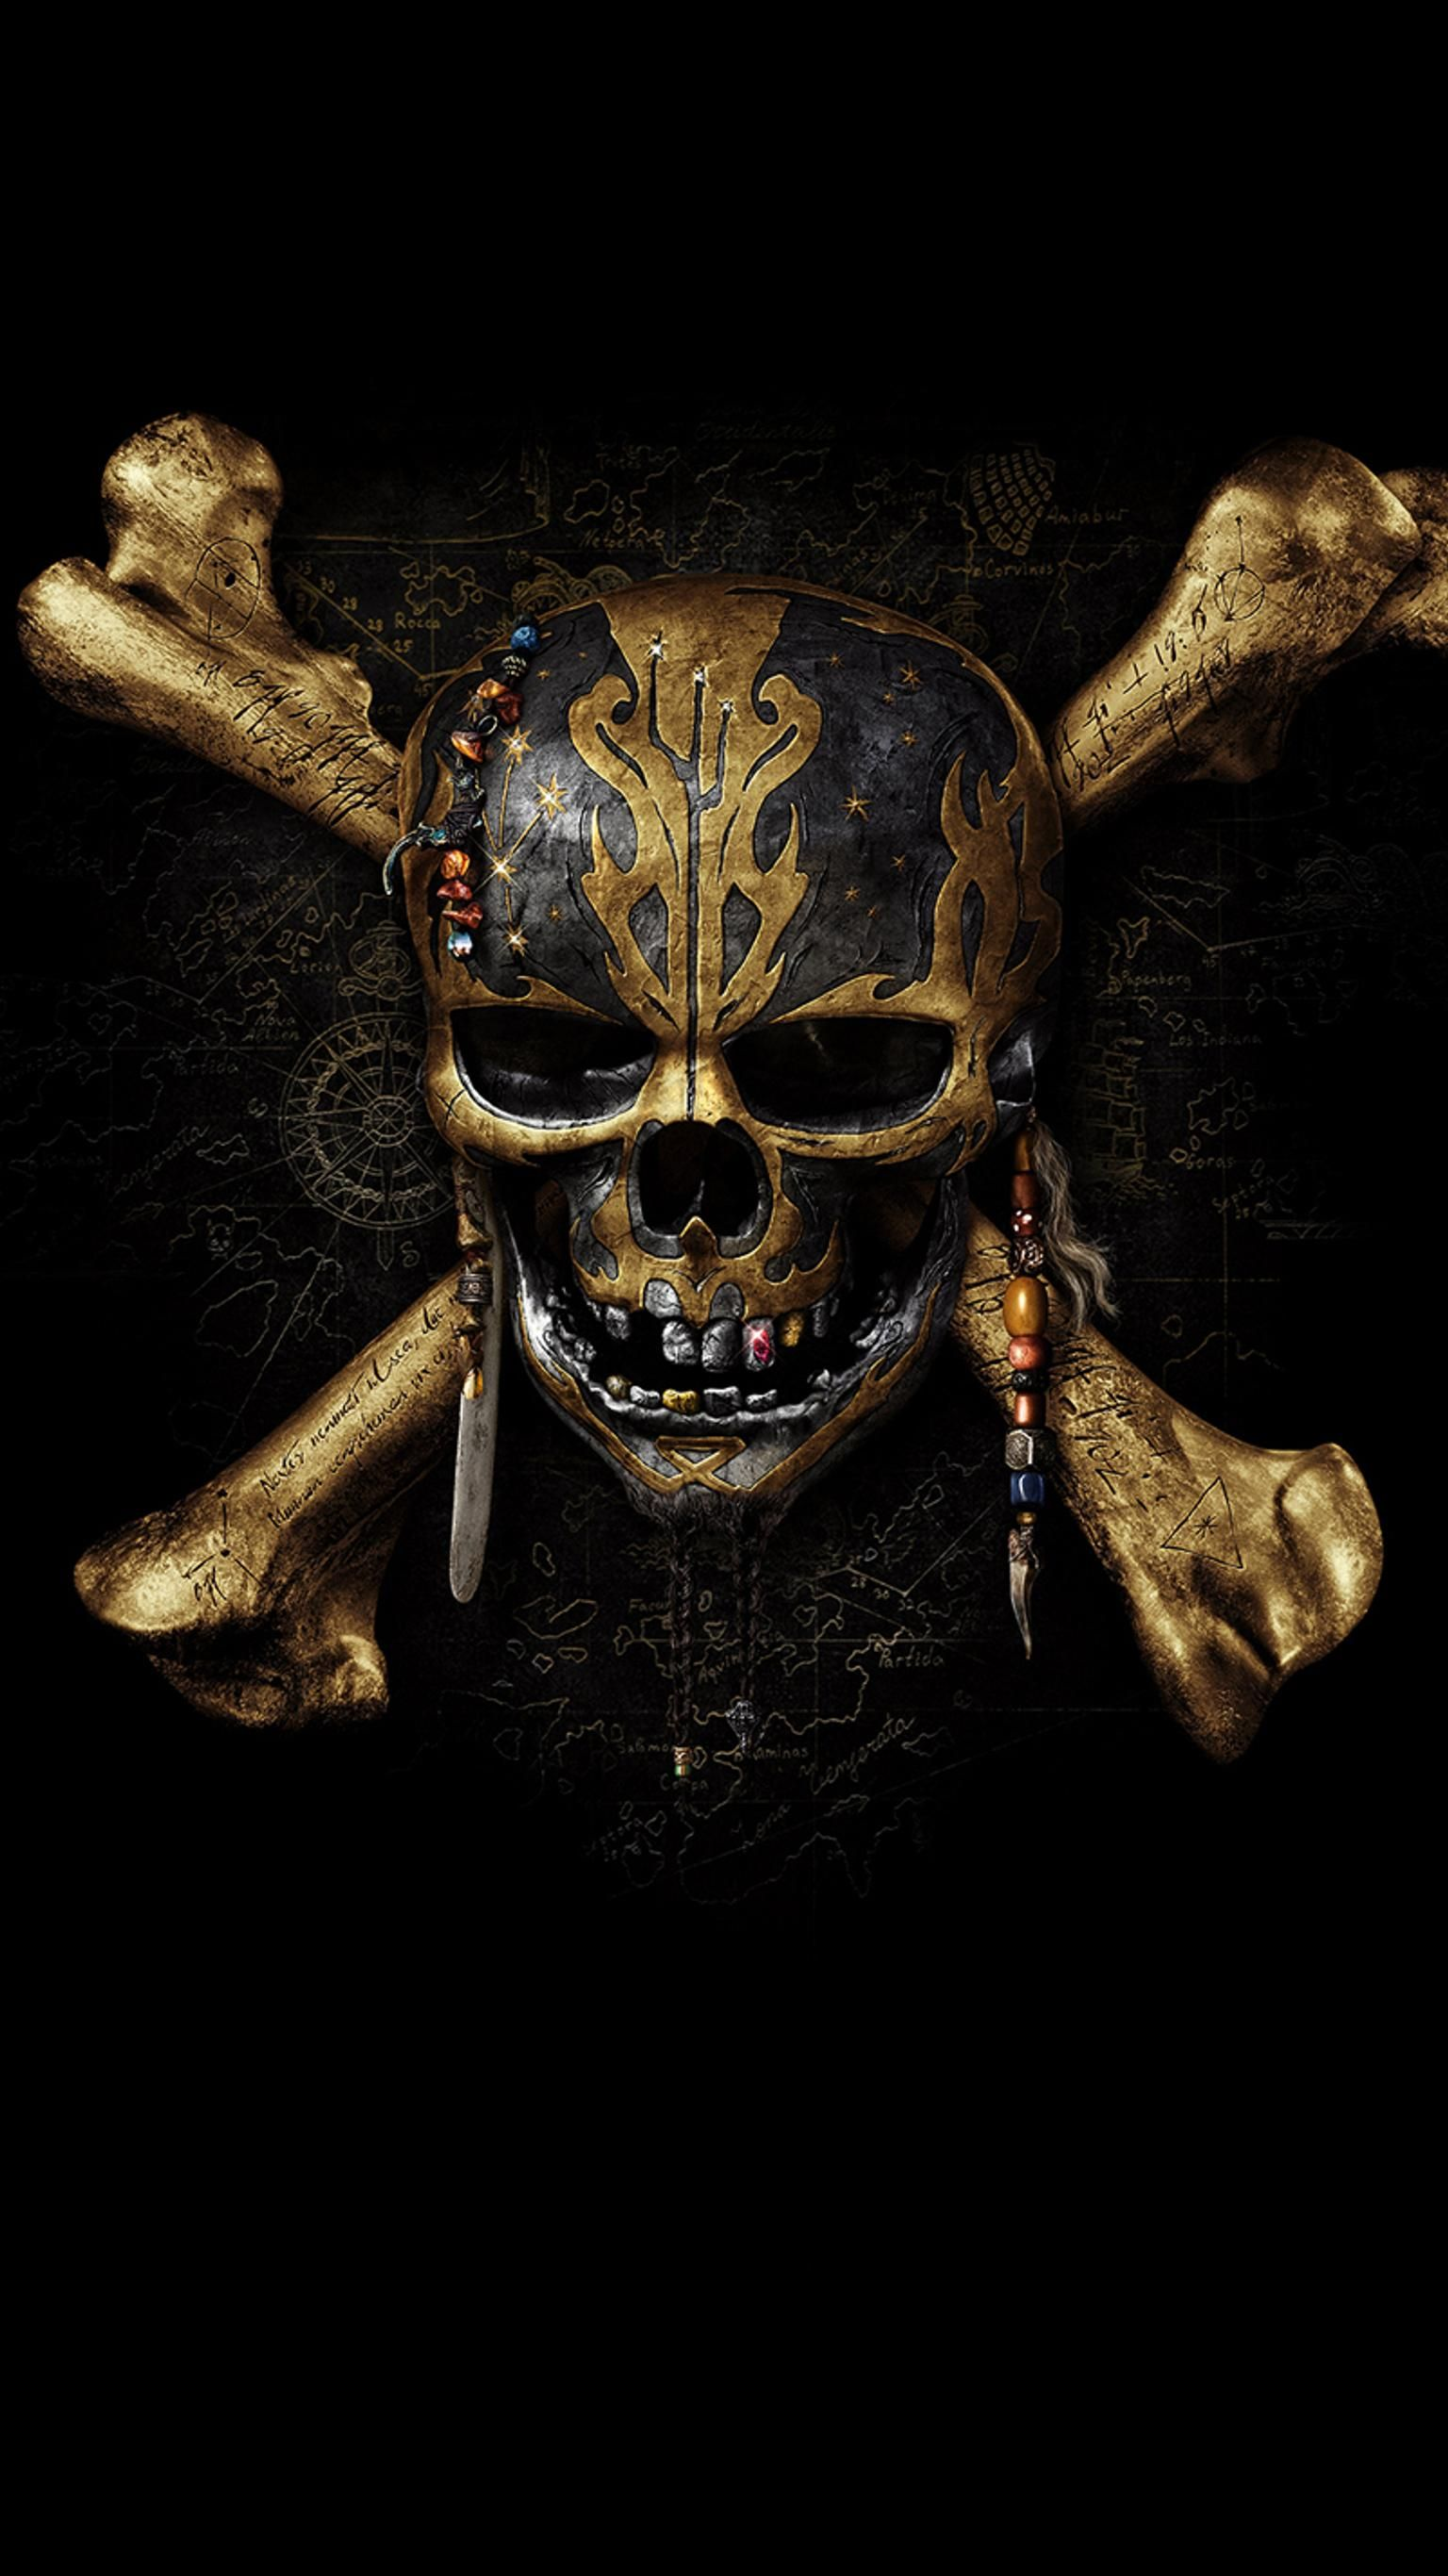 Pirates of the caribbean dead men tell no tales 2017 - Caribbean iphone wallpaper ...